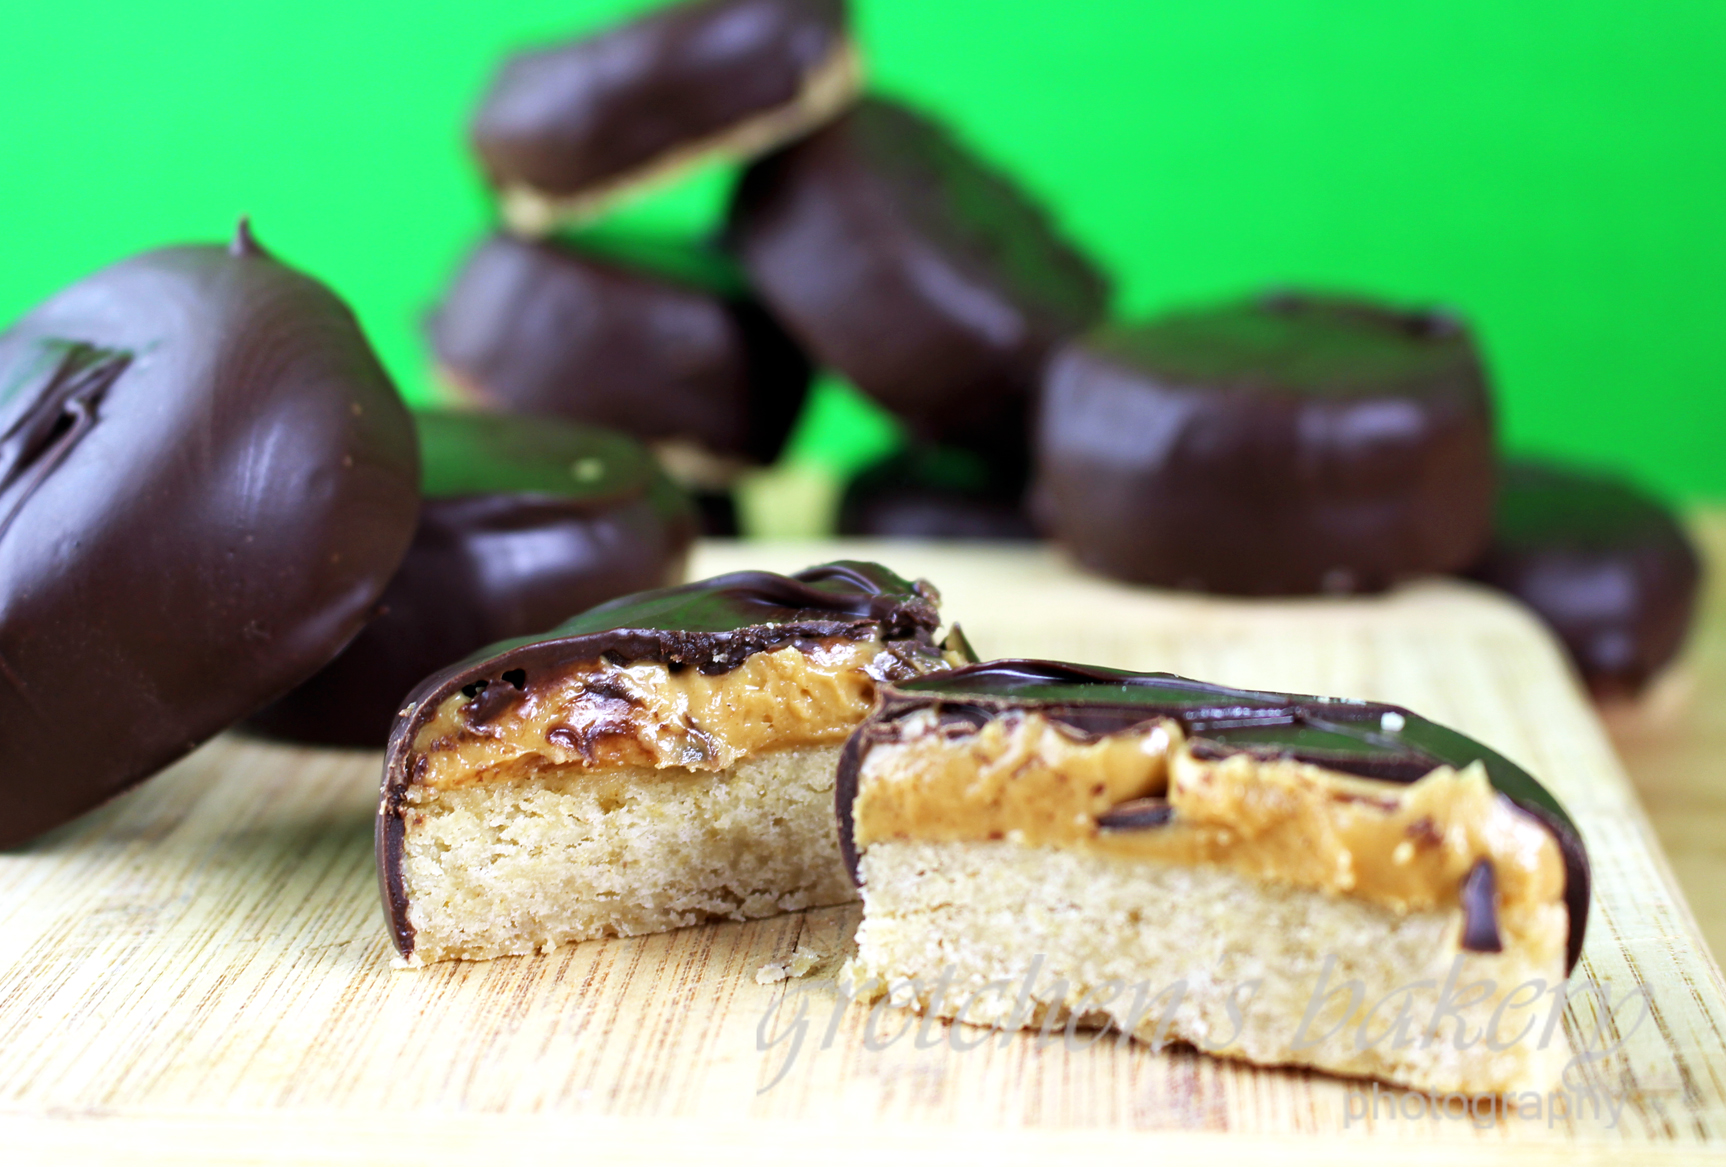 Copy Cat Recipe for Girl Scout Tagalongs